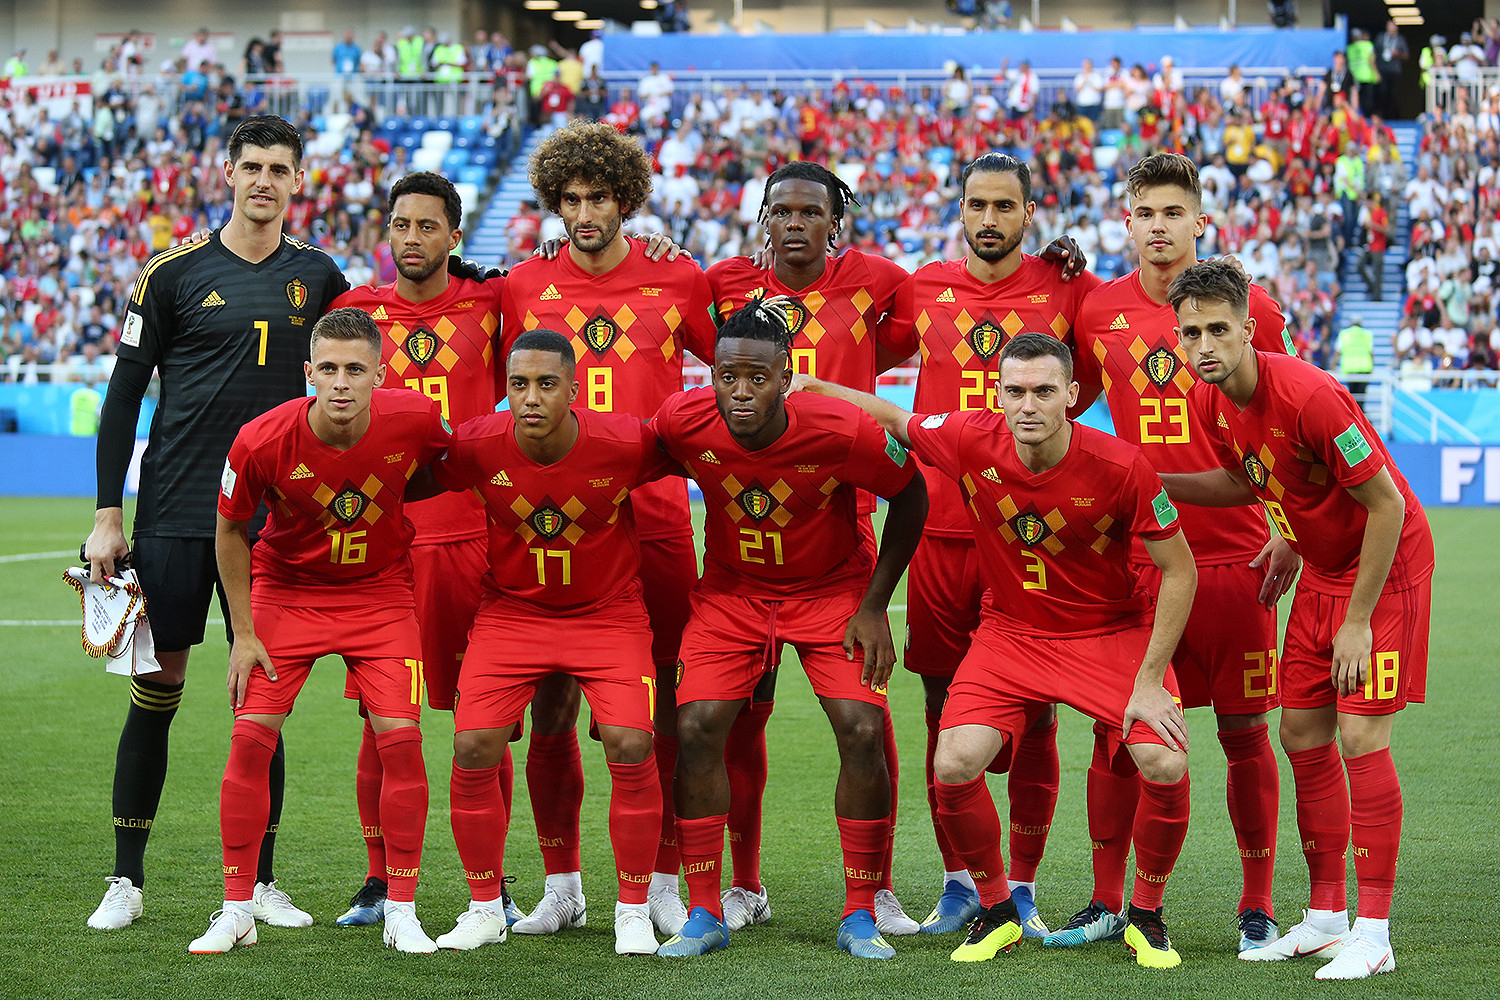 belgium soccer team All products are discounted, Cheaper Than Retail Price,  Free Delivery & Returns OFF 73%